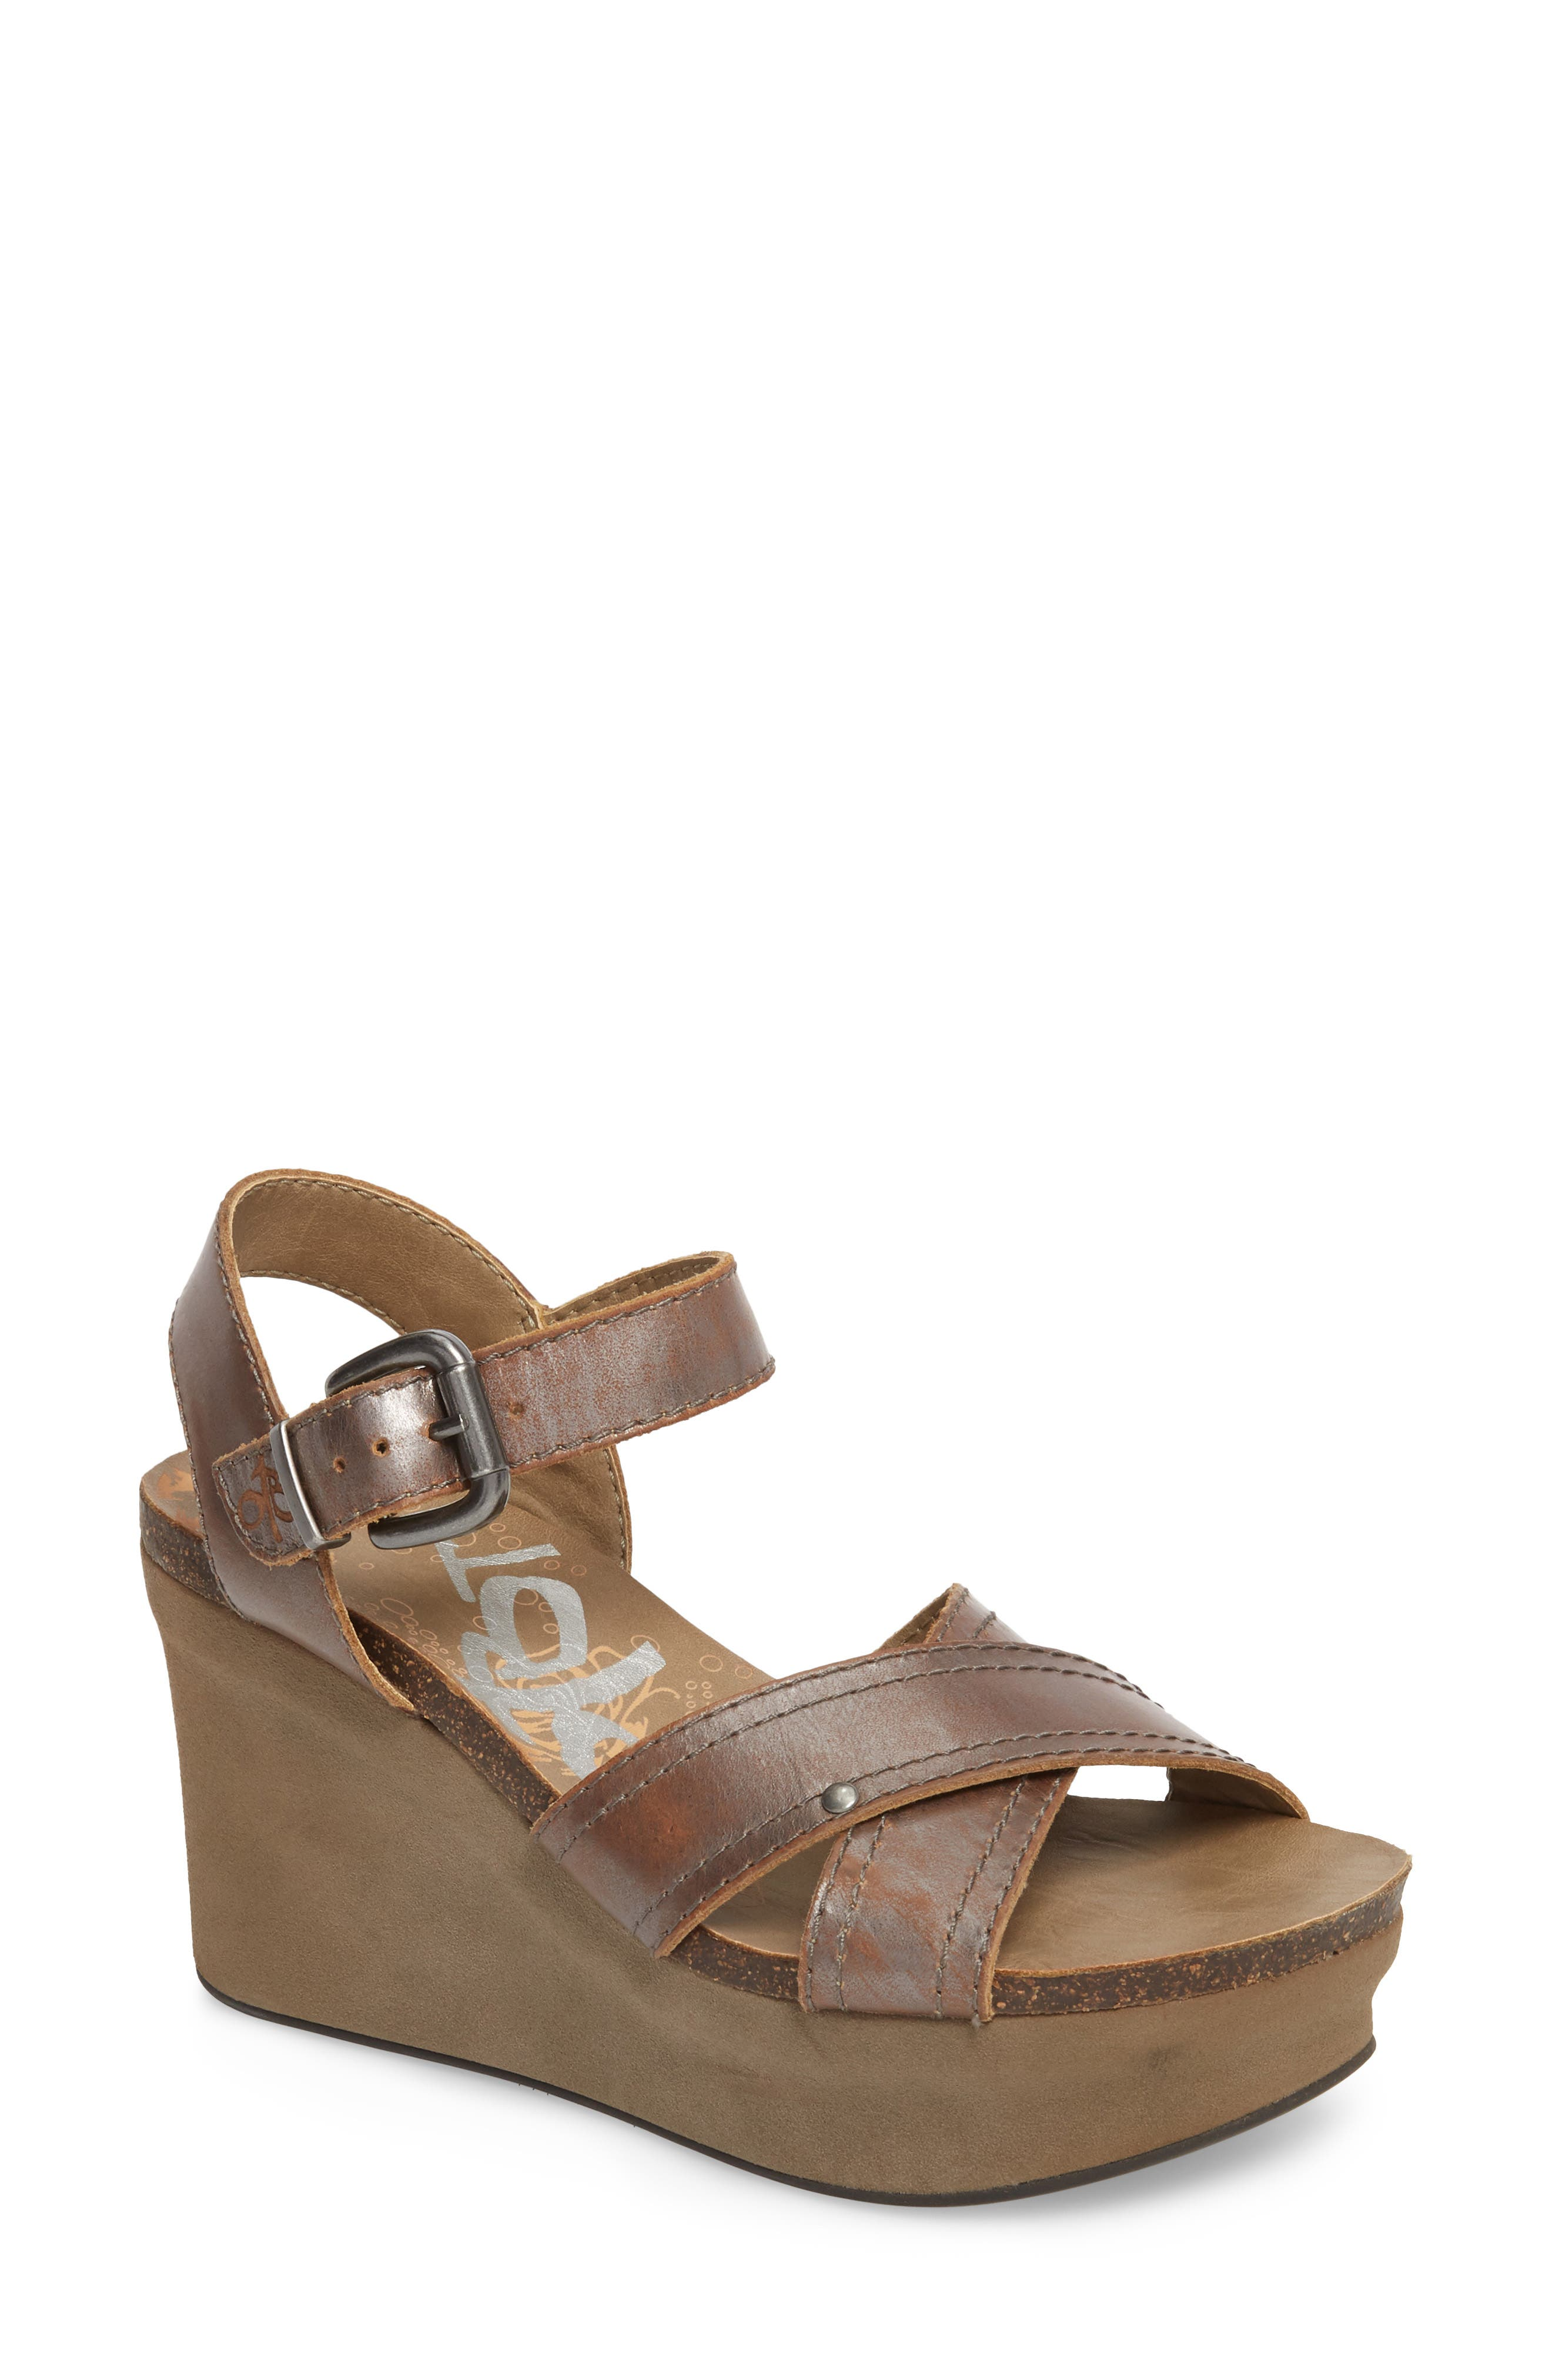 OTBT Bee Cave Wedge Sandal